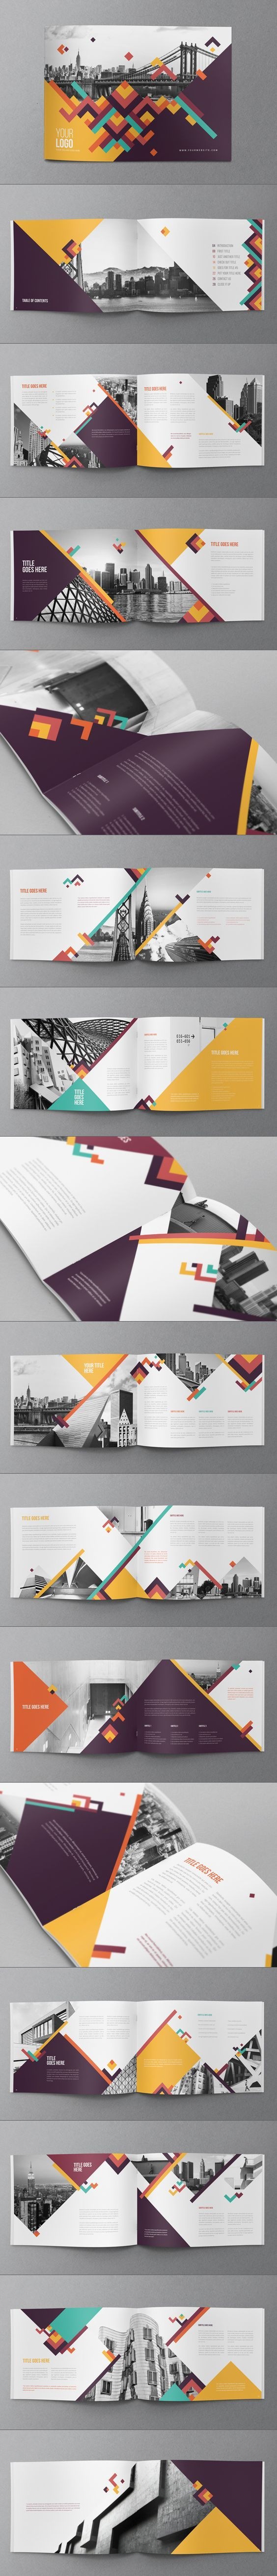 Colorful Pattern Brochure by Abra Design, via Behance: